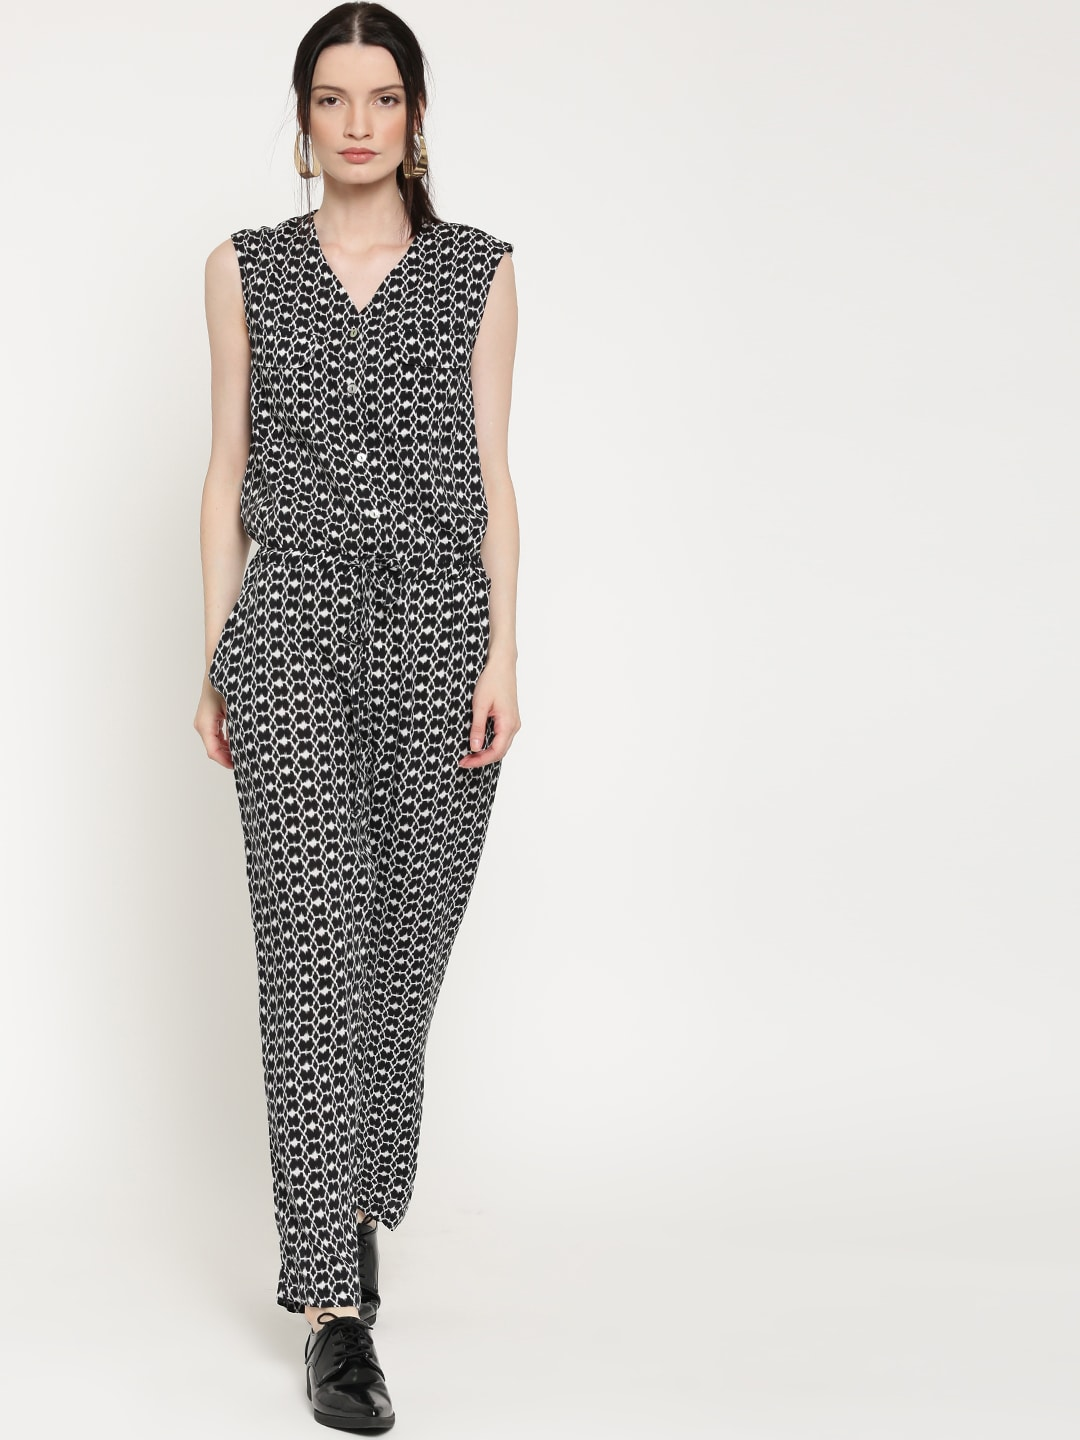 188e53fddfff Forever 21 129849-black-cream Black And White Printed Jumpsuit- Price in  India